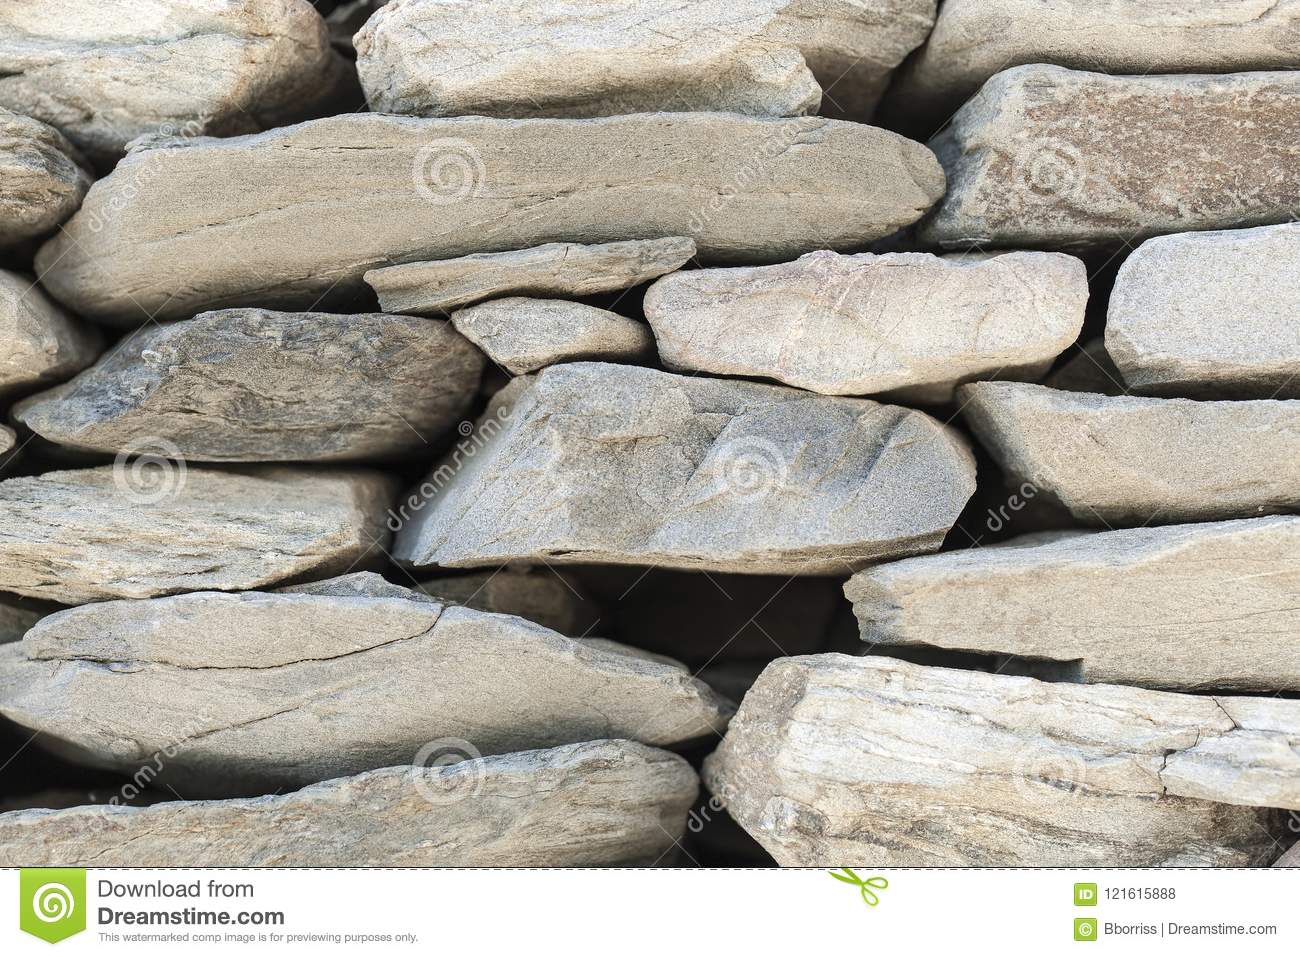 The stone fence of solid pieces of stone